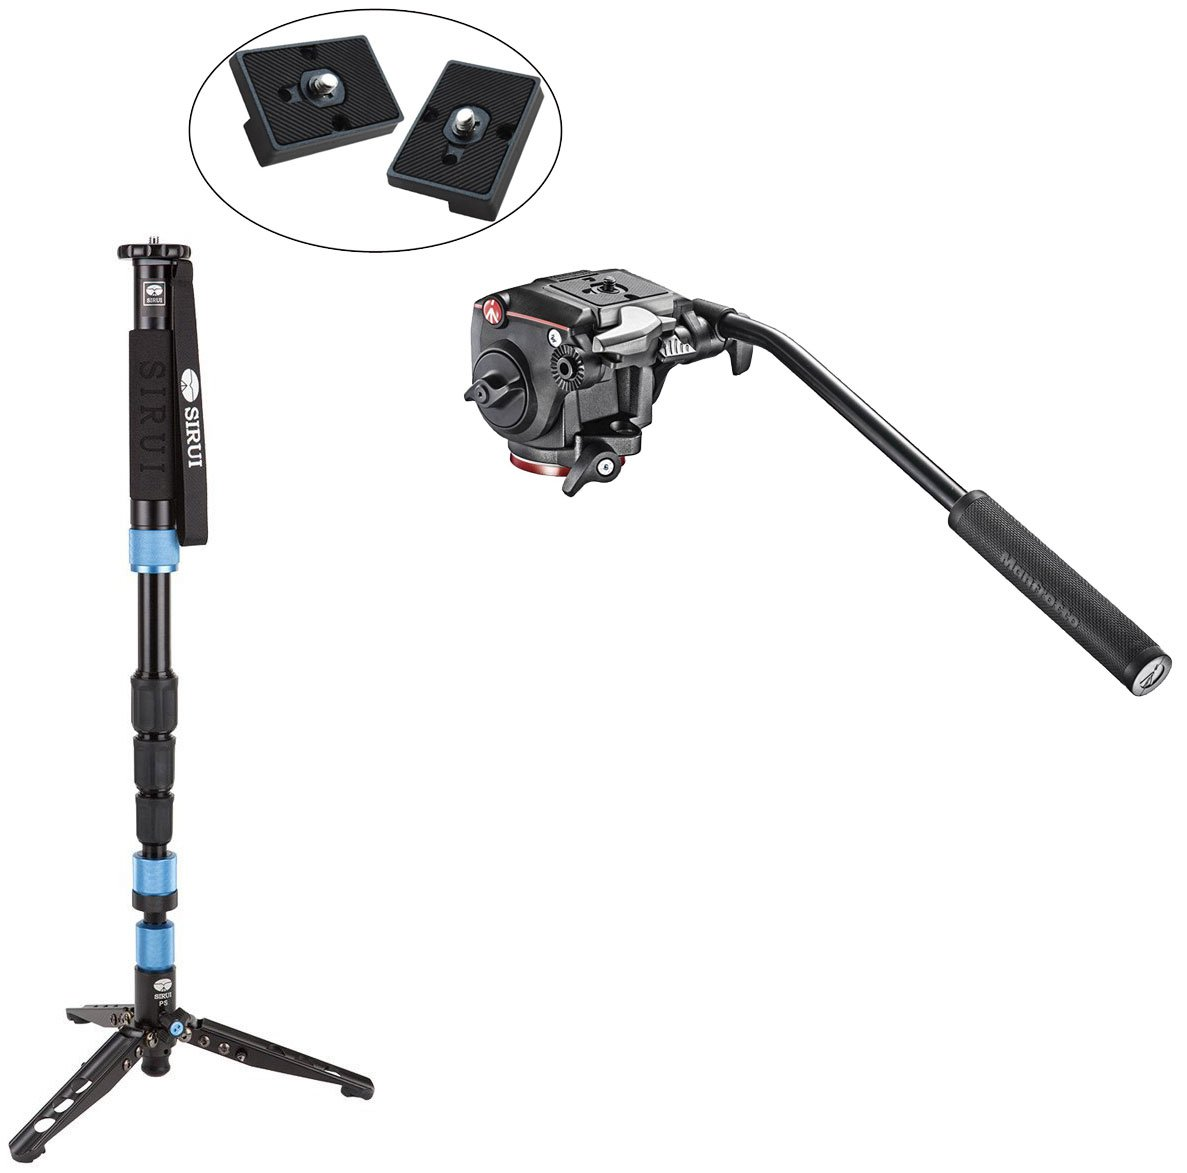 Sirui P-204S Aluminum Lightweight Photo/Video Monopod with Manfrotto XPRO Fluid Head with Fluidity Selector Plus Two Bonus Replacement Quick Release Plates for the RC2 Rapid Connect Adapter by Sirui